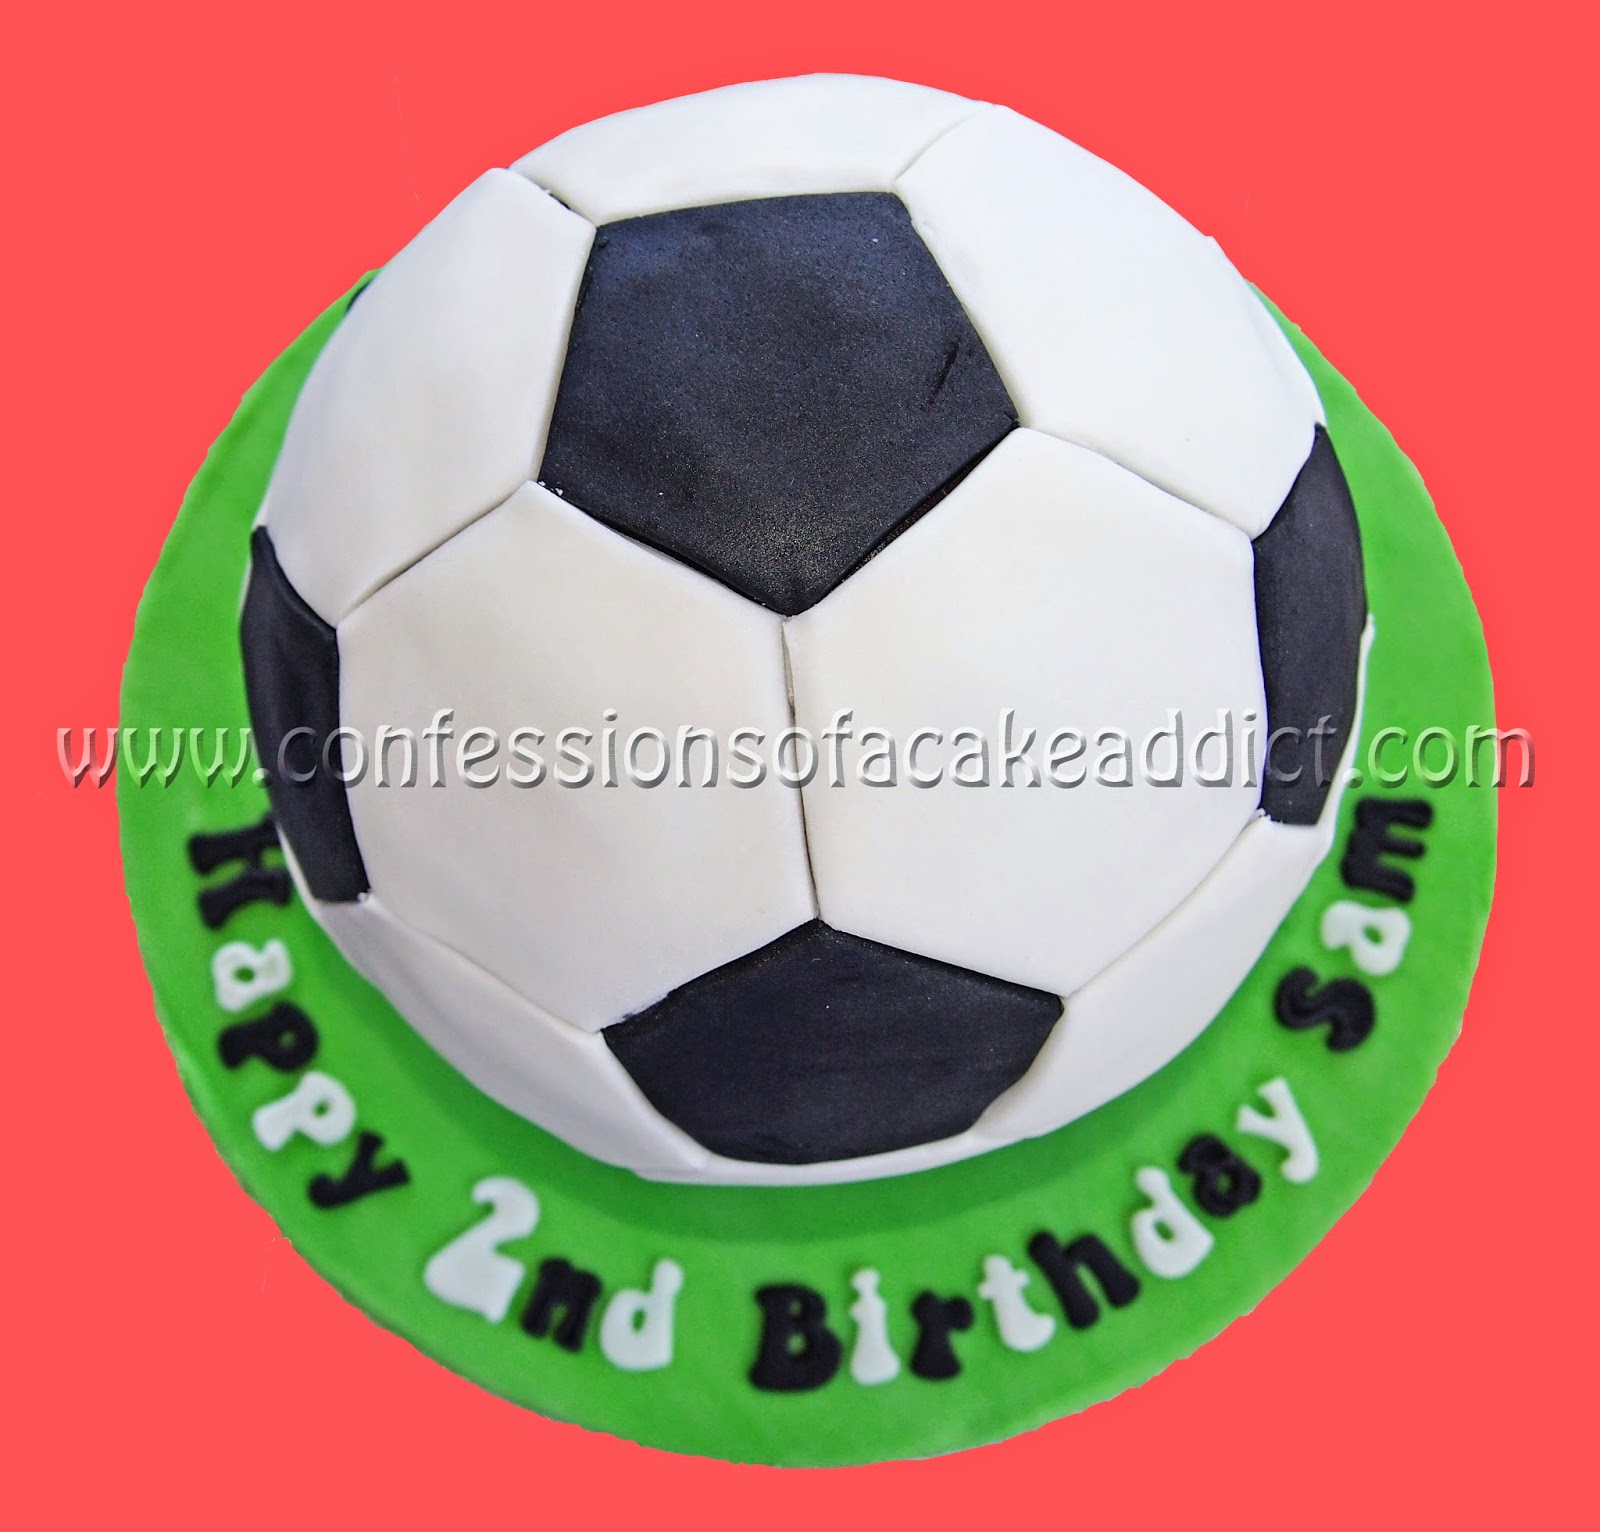 confessions of a cake addict : How to Make a Soccer Ball Cake